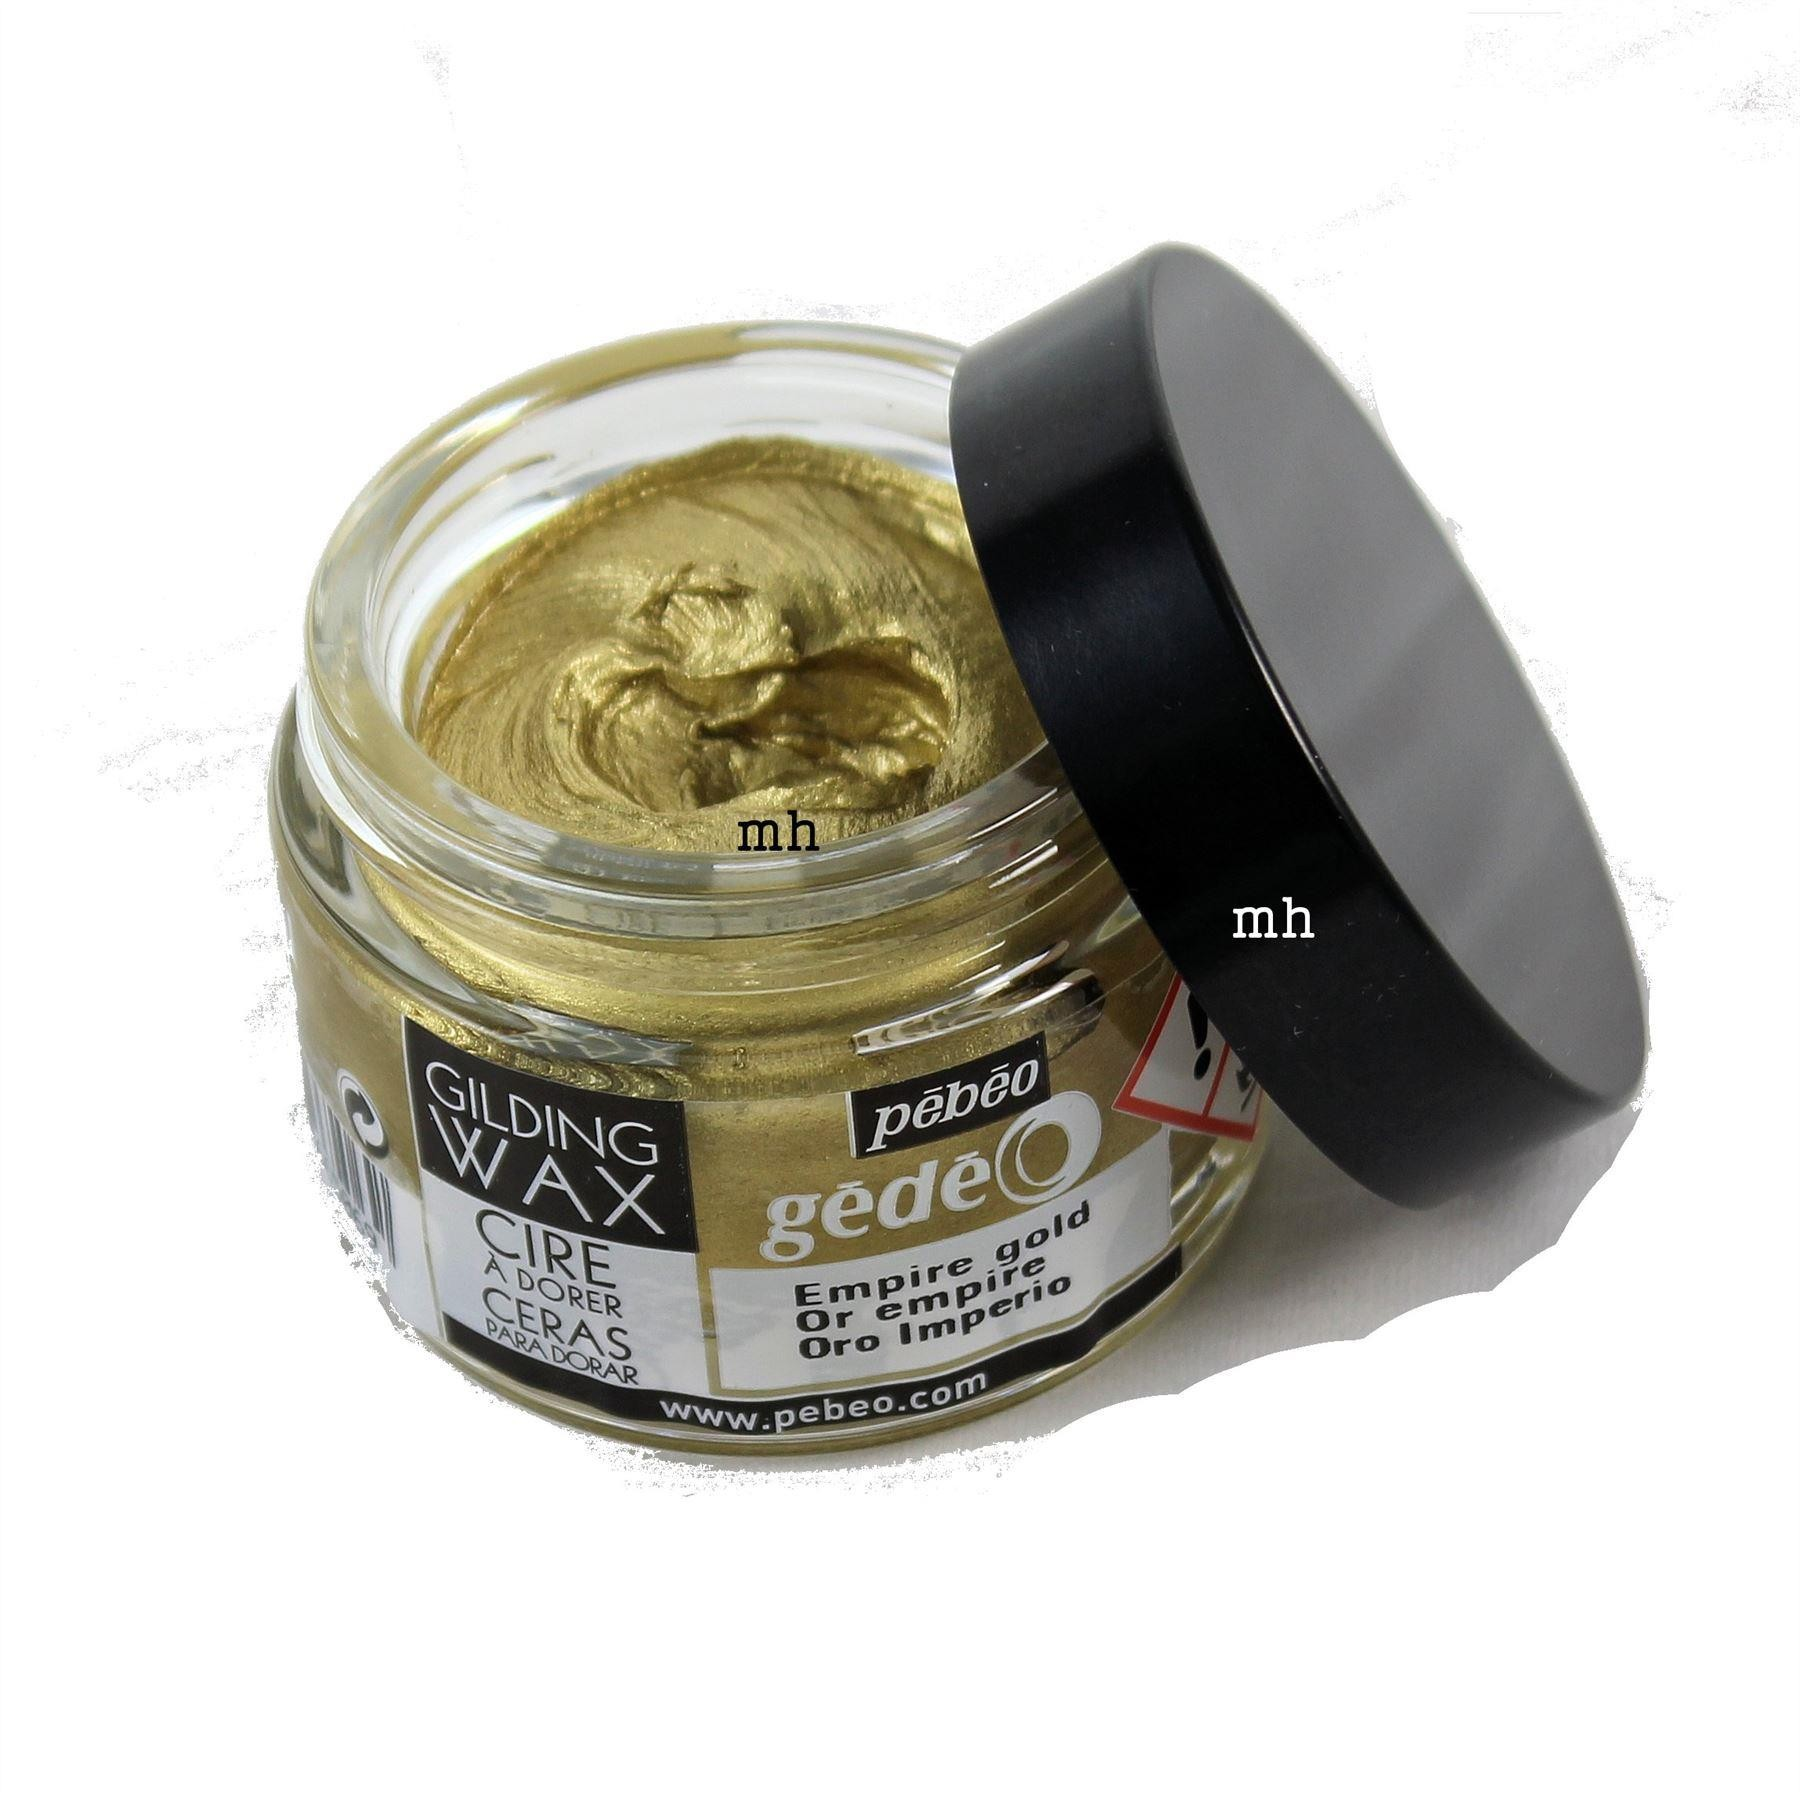 Pebeo Gedeo Gilding wax in gold or silver, crafters metallic wax